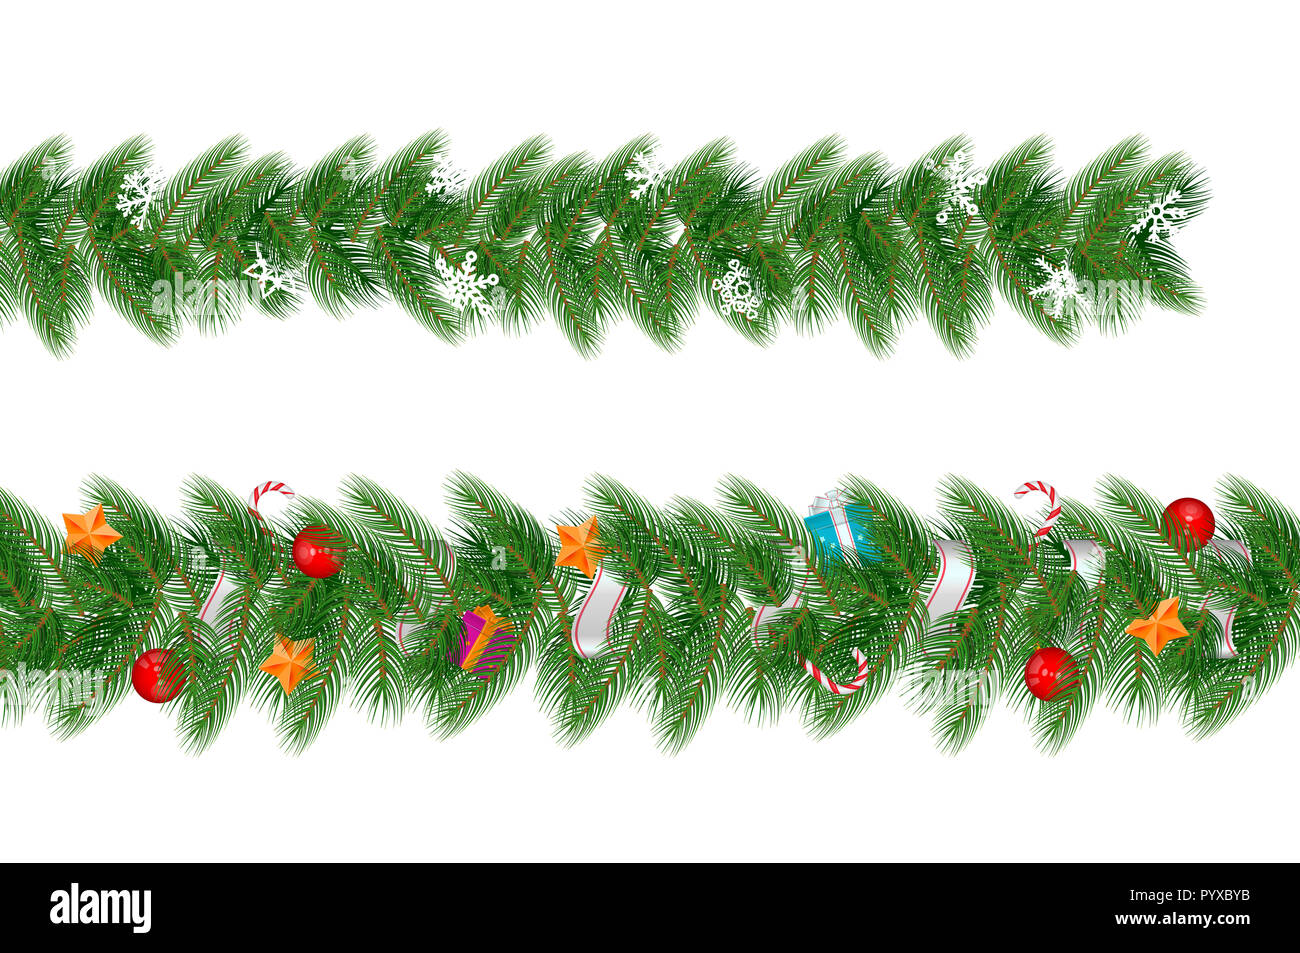 Clipart Weihnachts Cliparts Stockfotos & Clipart Weihnachts Cliparts ...